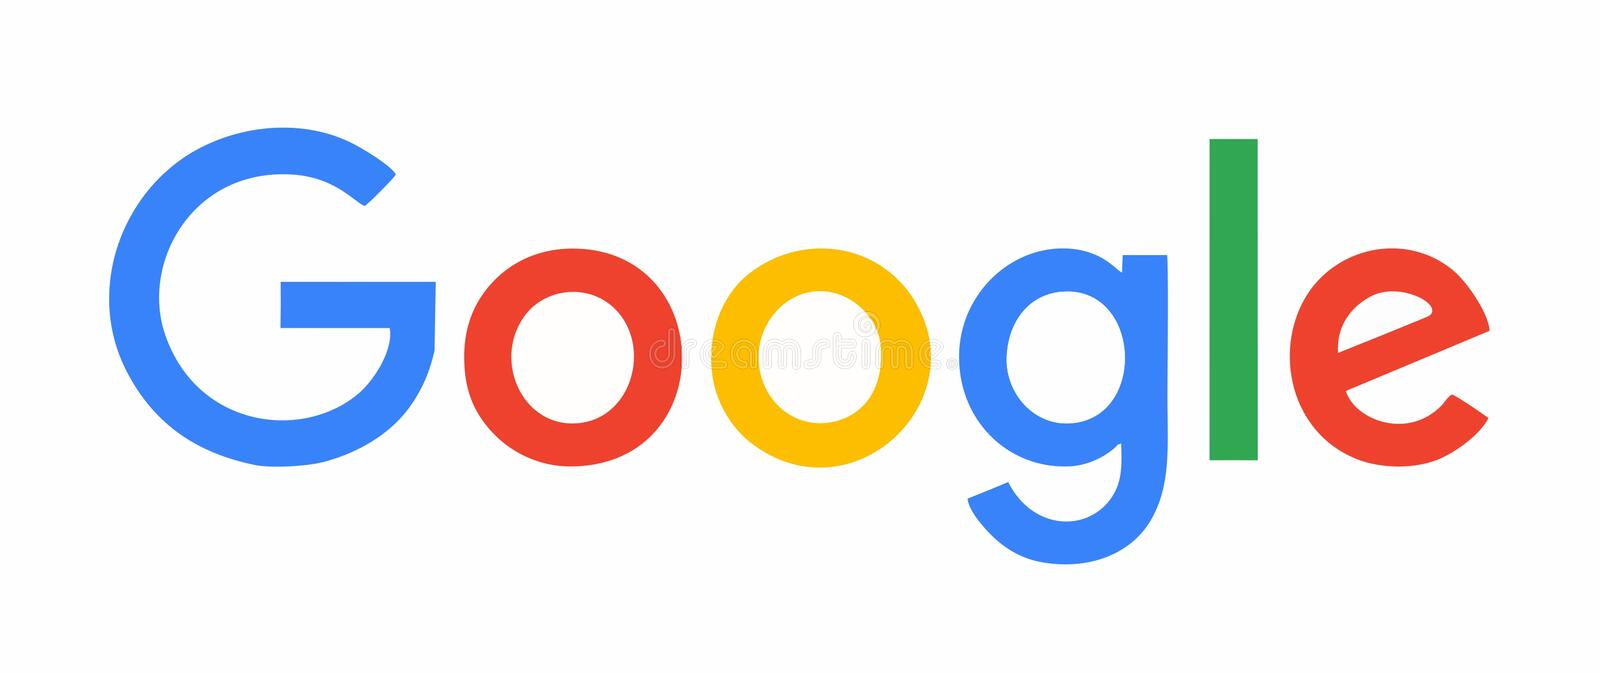 Google logo. Type on white background. EPS vector format trace from photo